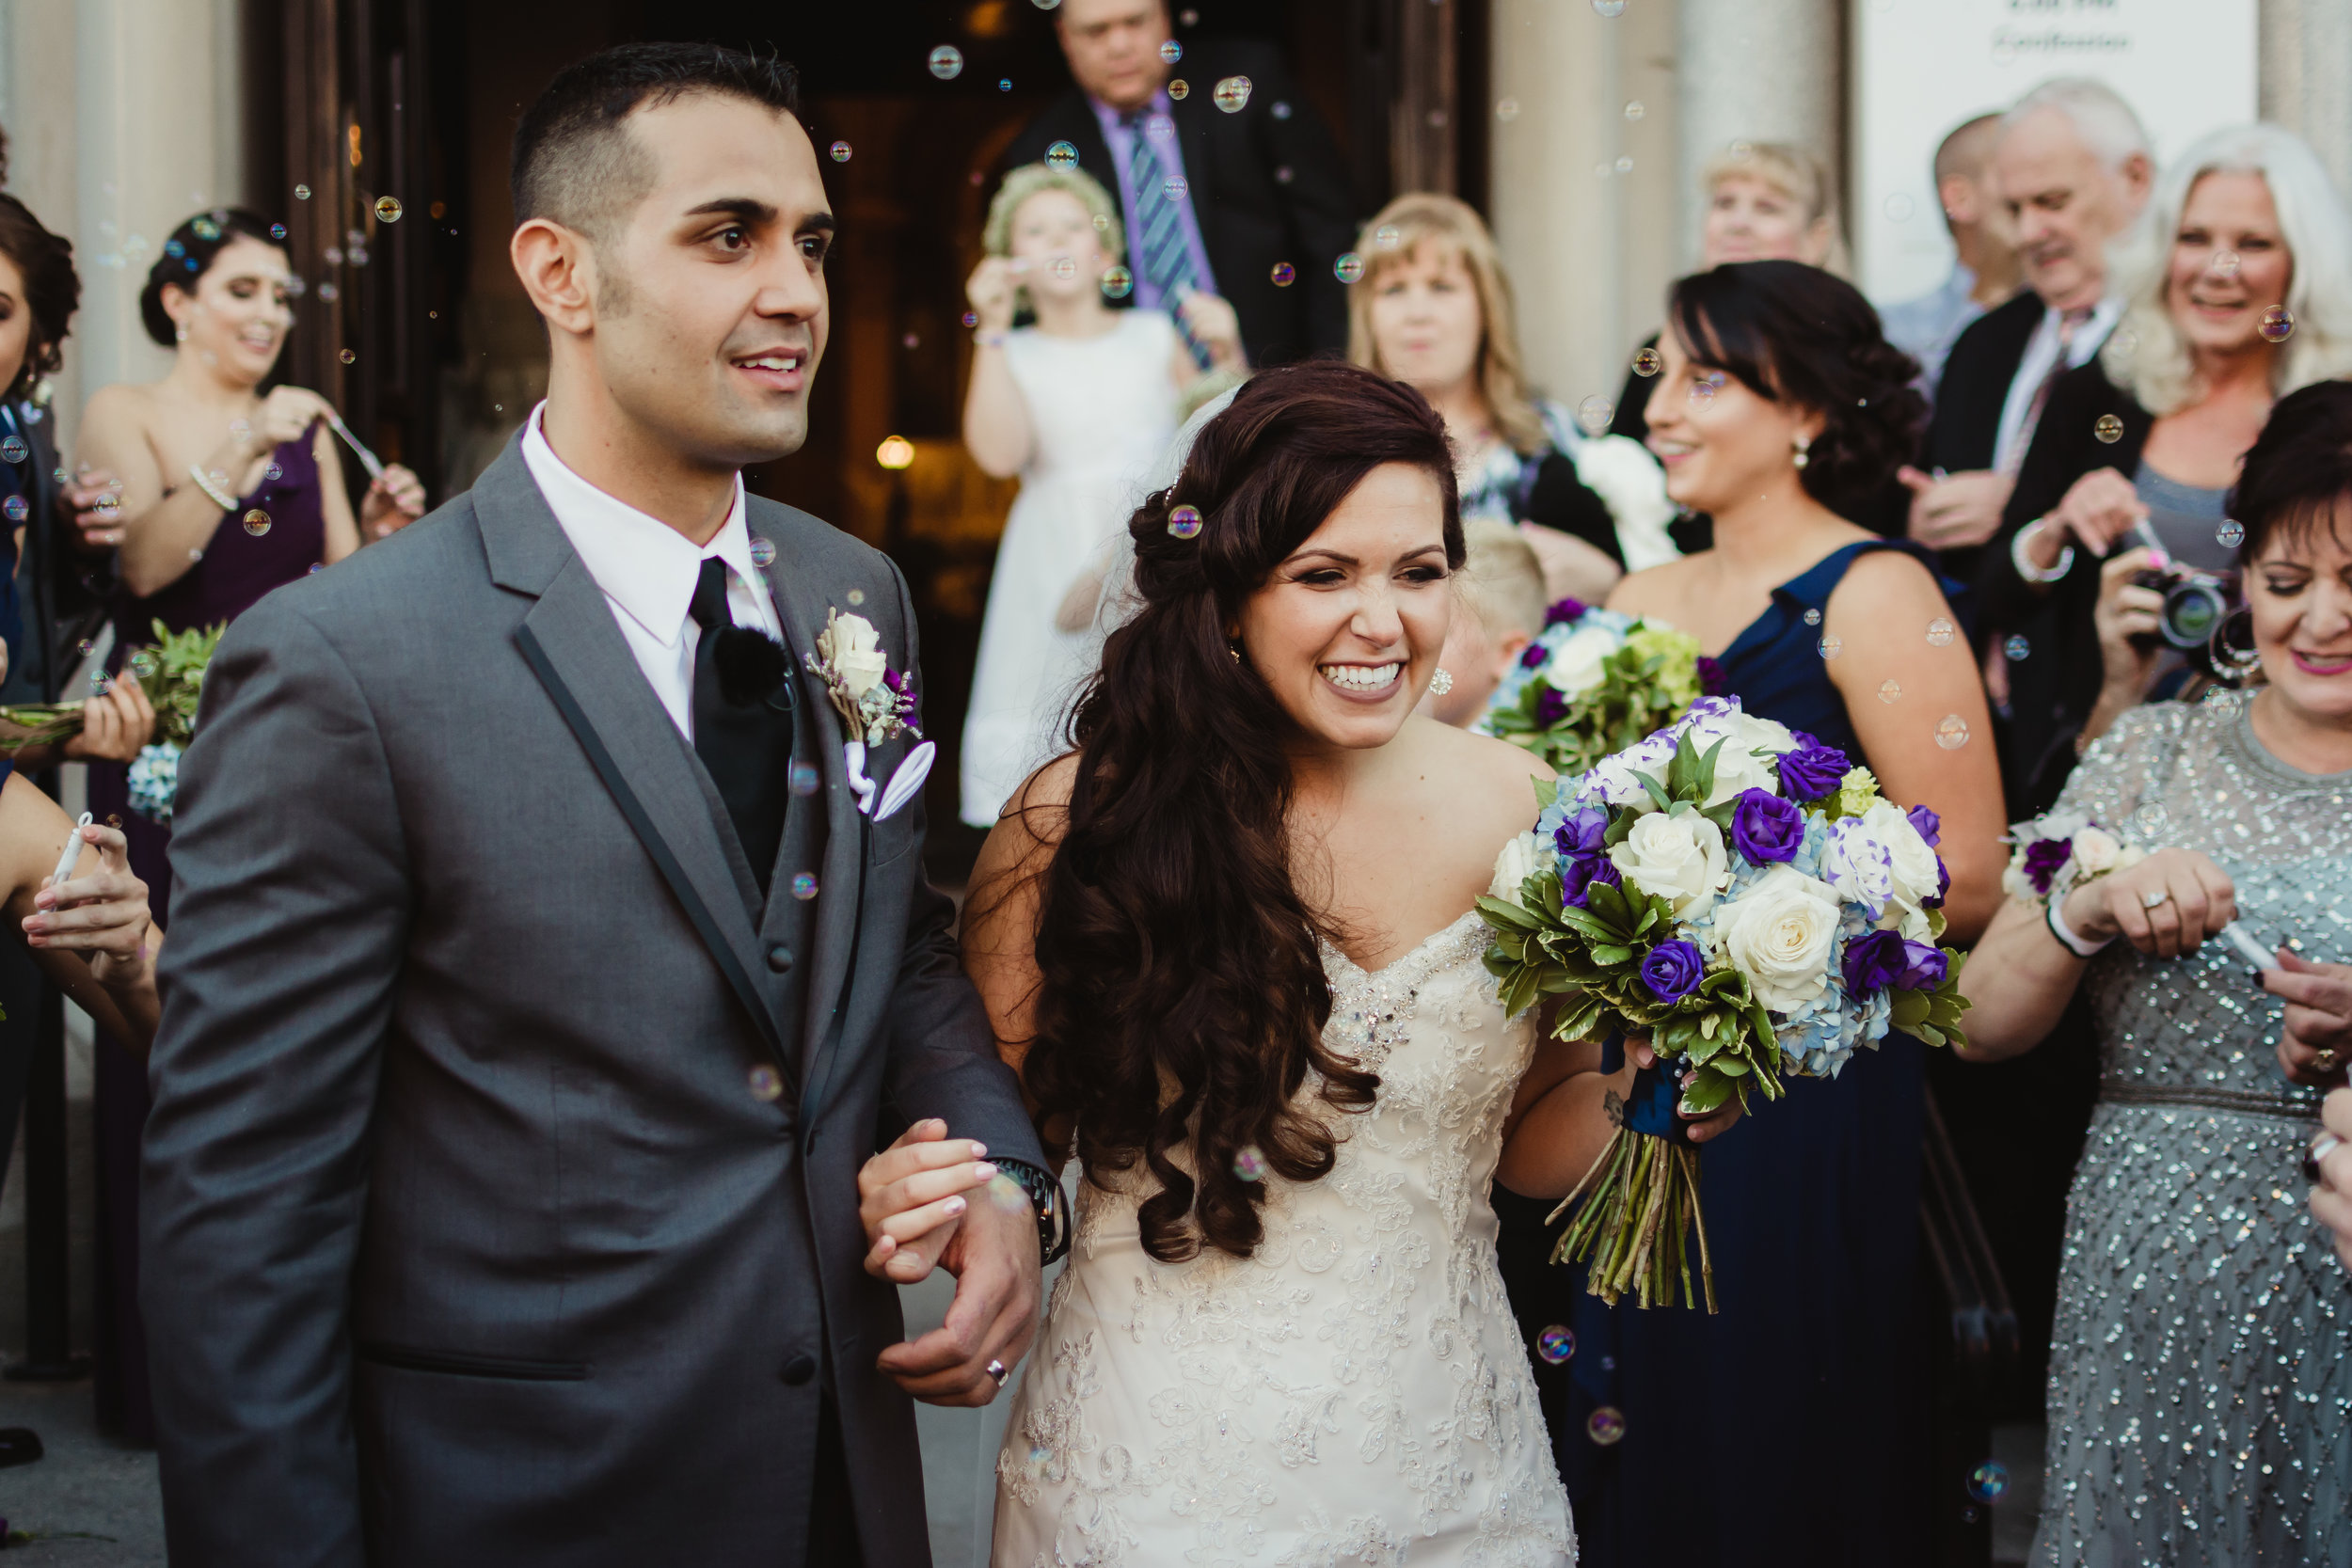 """""""Brittney is awesome, very bubbly and professional! I loved how she made everyone feel so comfortable and overall just made everyone smile. We had a great time! She captured amazing pictures from my wedding and I couldn't have been more ecstatic. Thank you again!"""""""